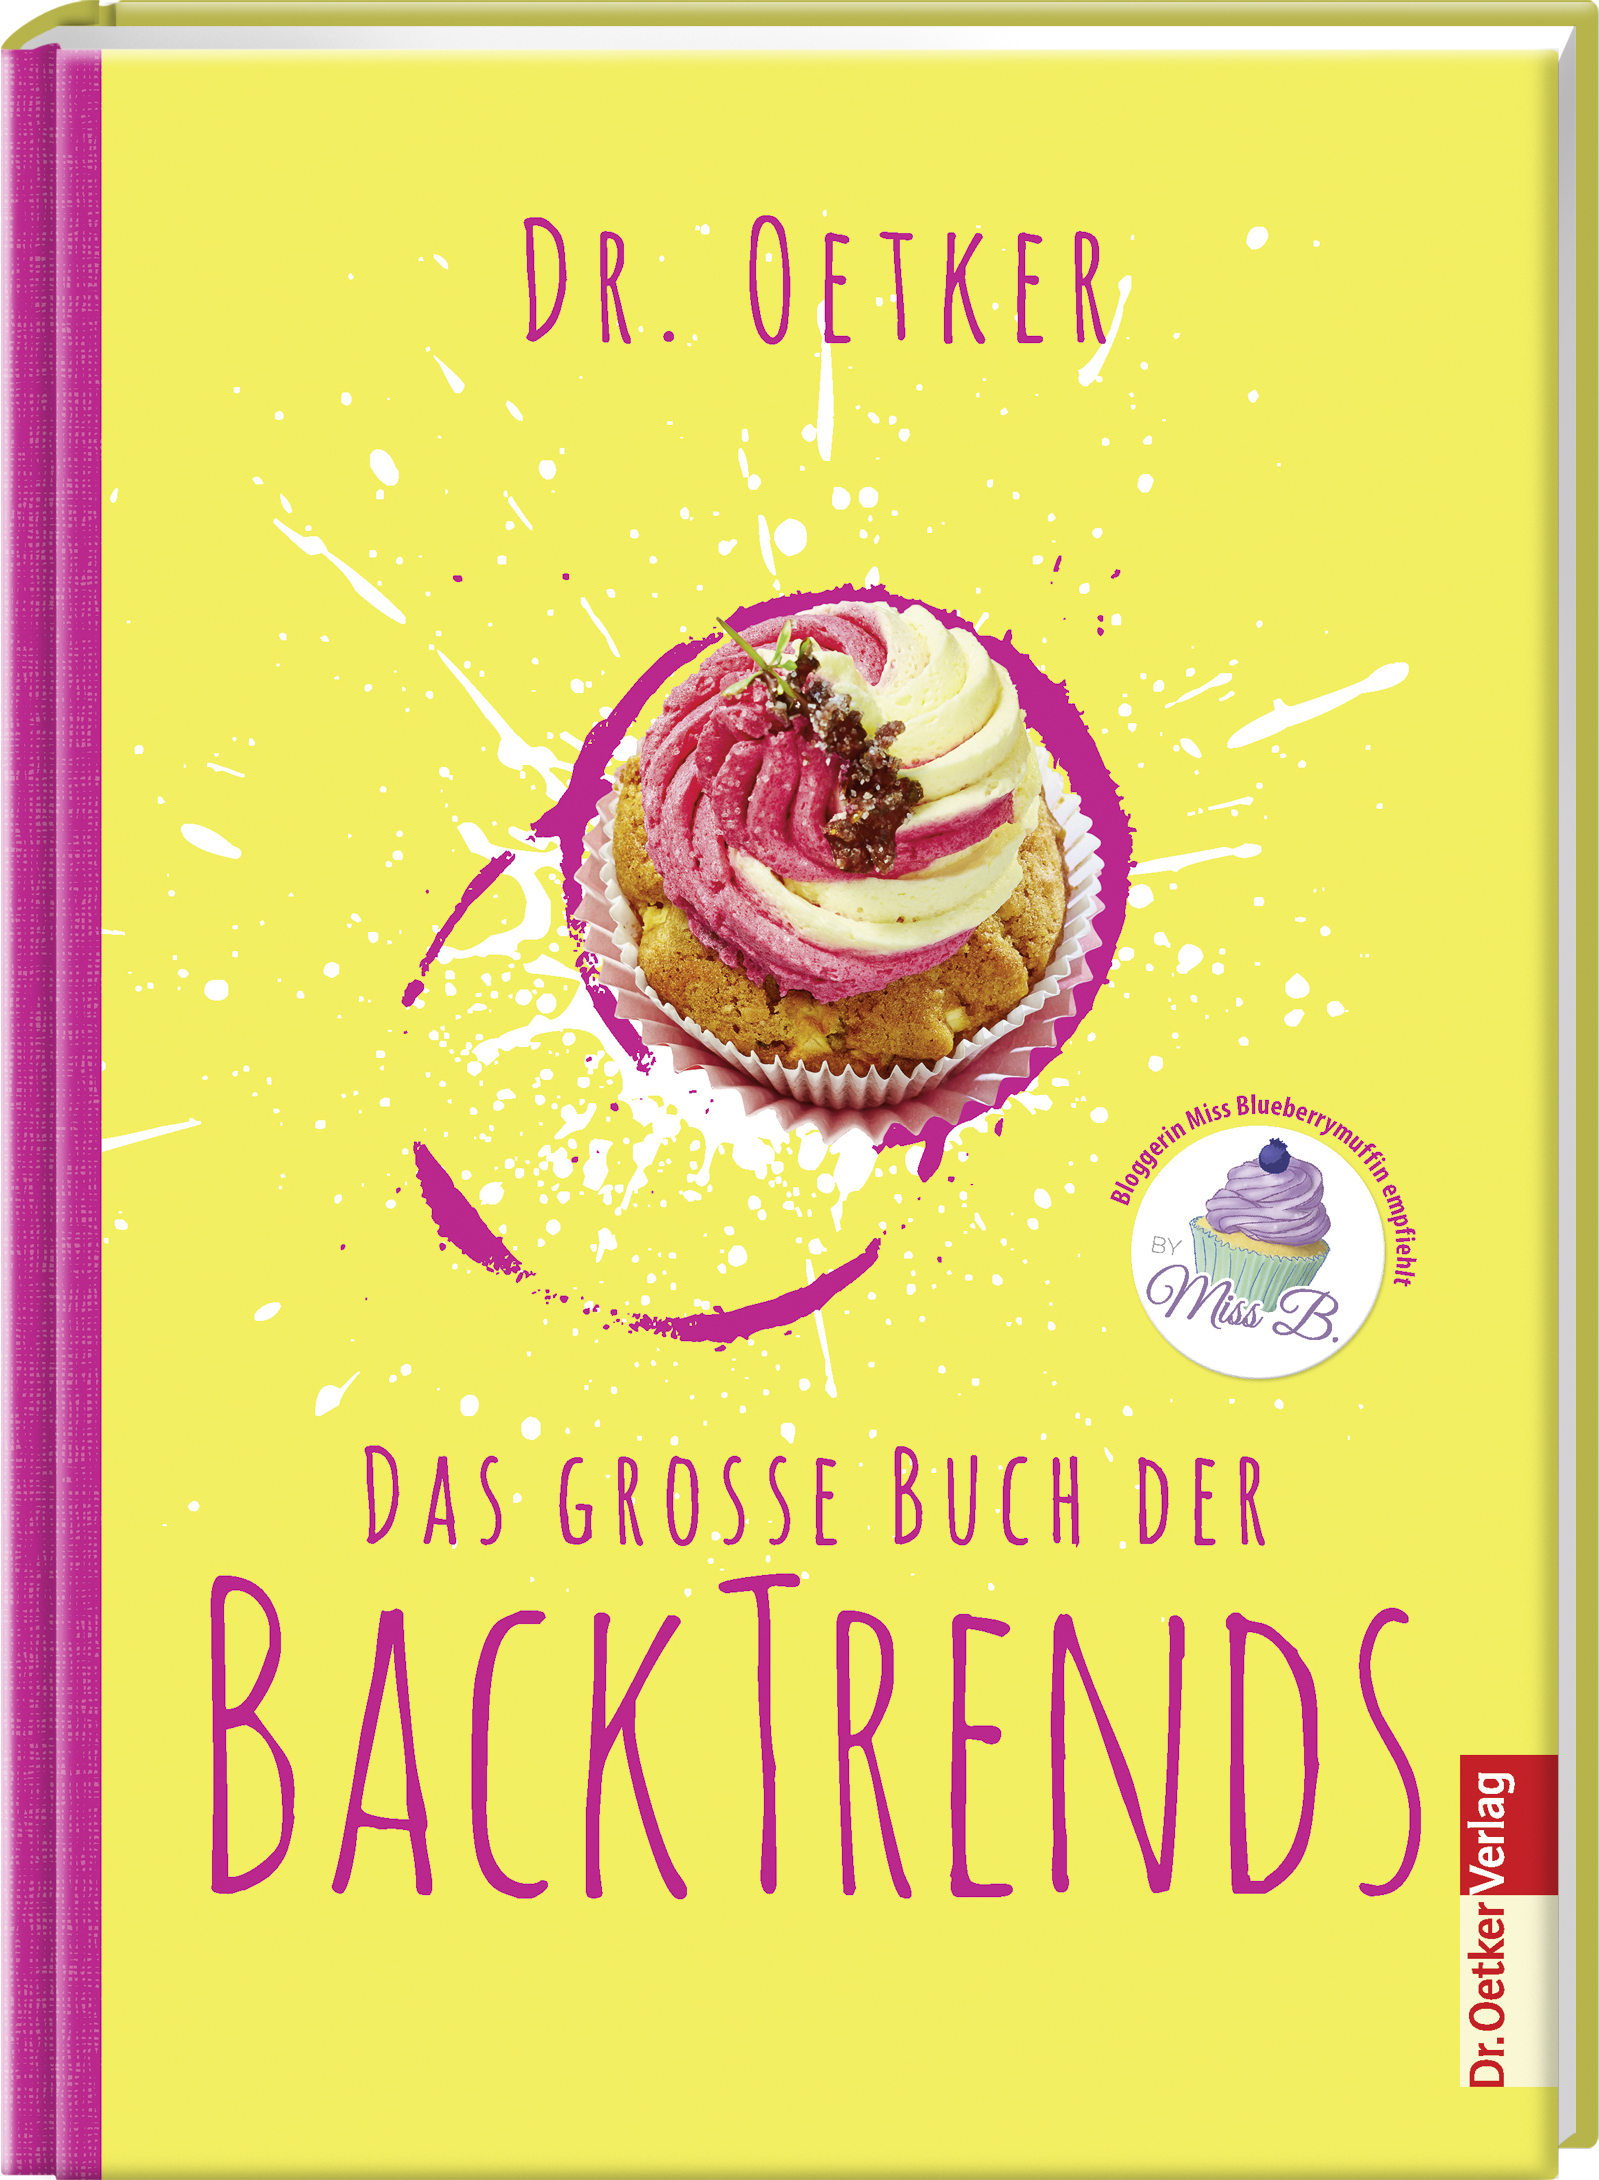 Buch d. Backtrends Dr. Oetker